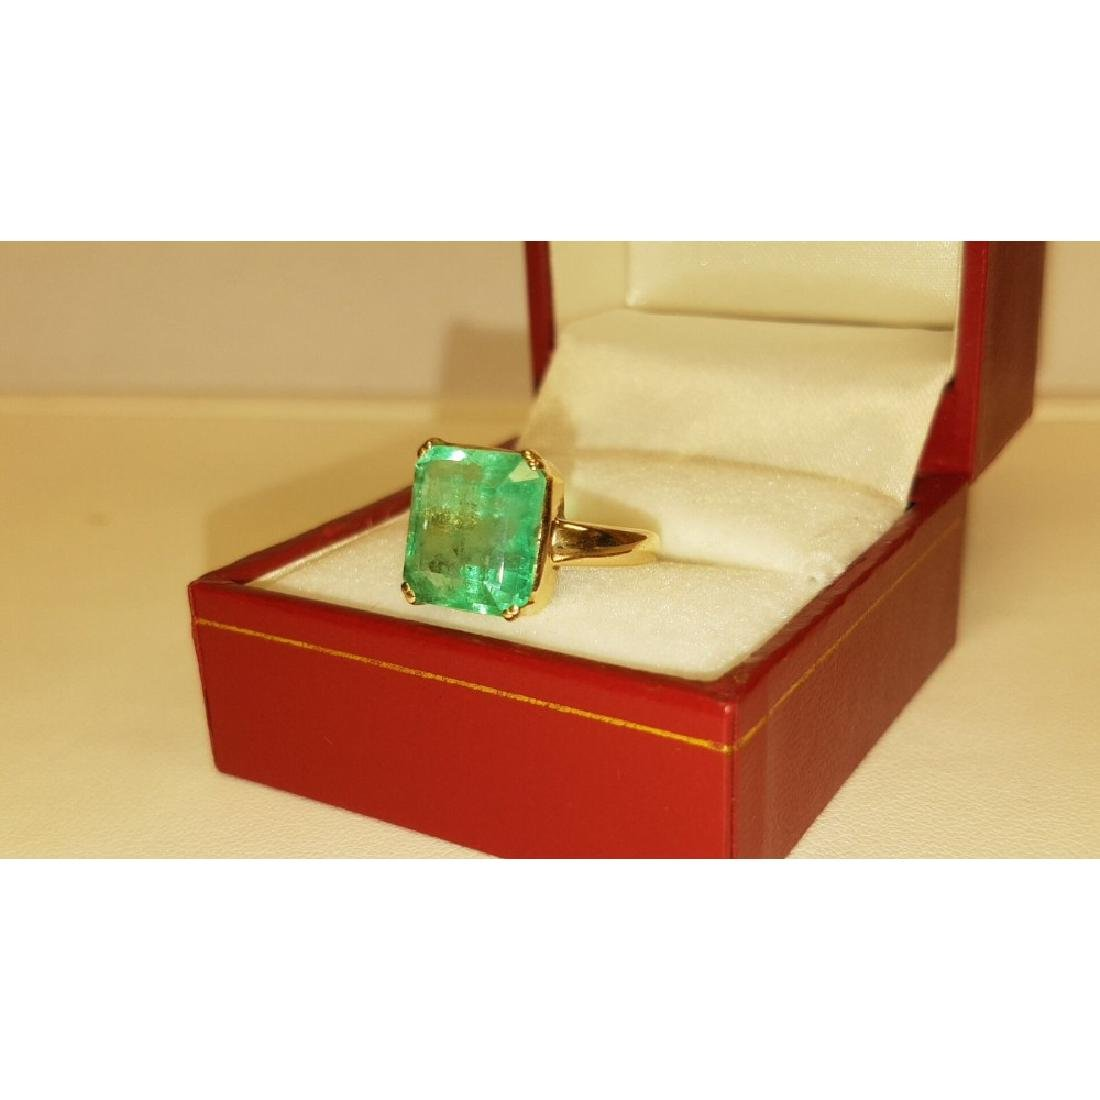 14K Yellow Gold, 6.00 Carat Solitaire Emerald Ring - 5